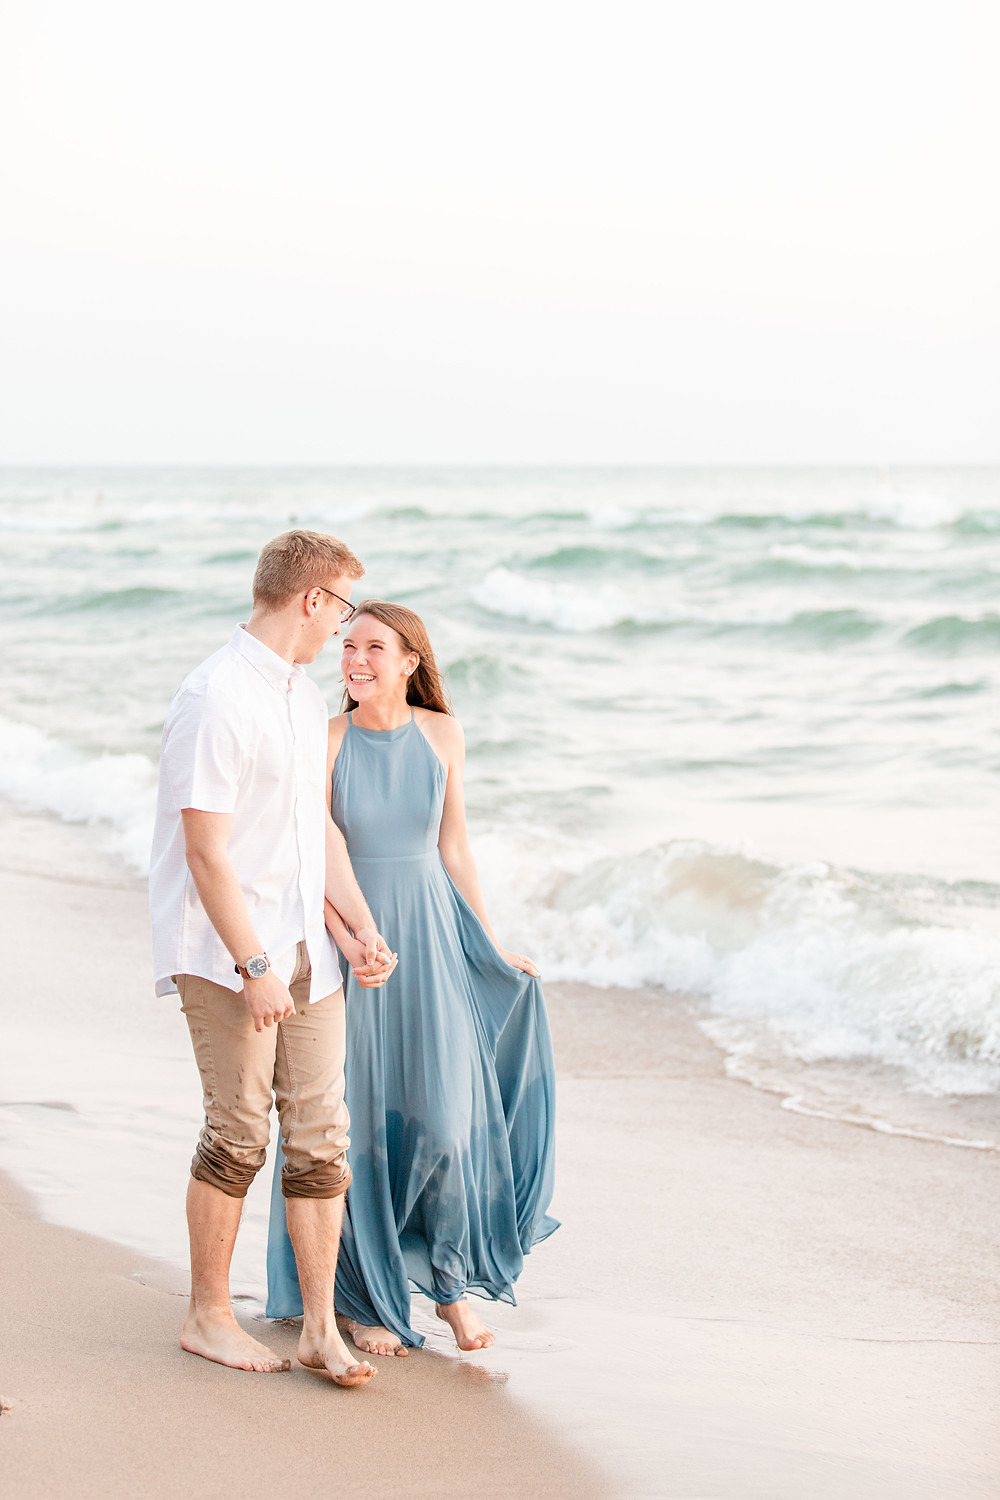 Engagement Photos Tunnel Park Beach Holland Michigan Engaged Couple walking on beach smiling long blue dress